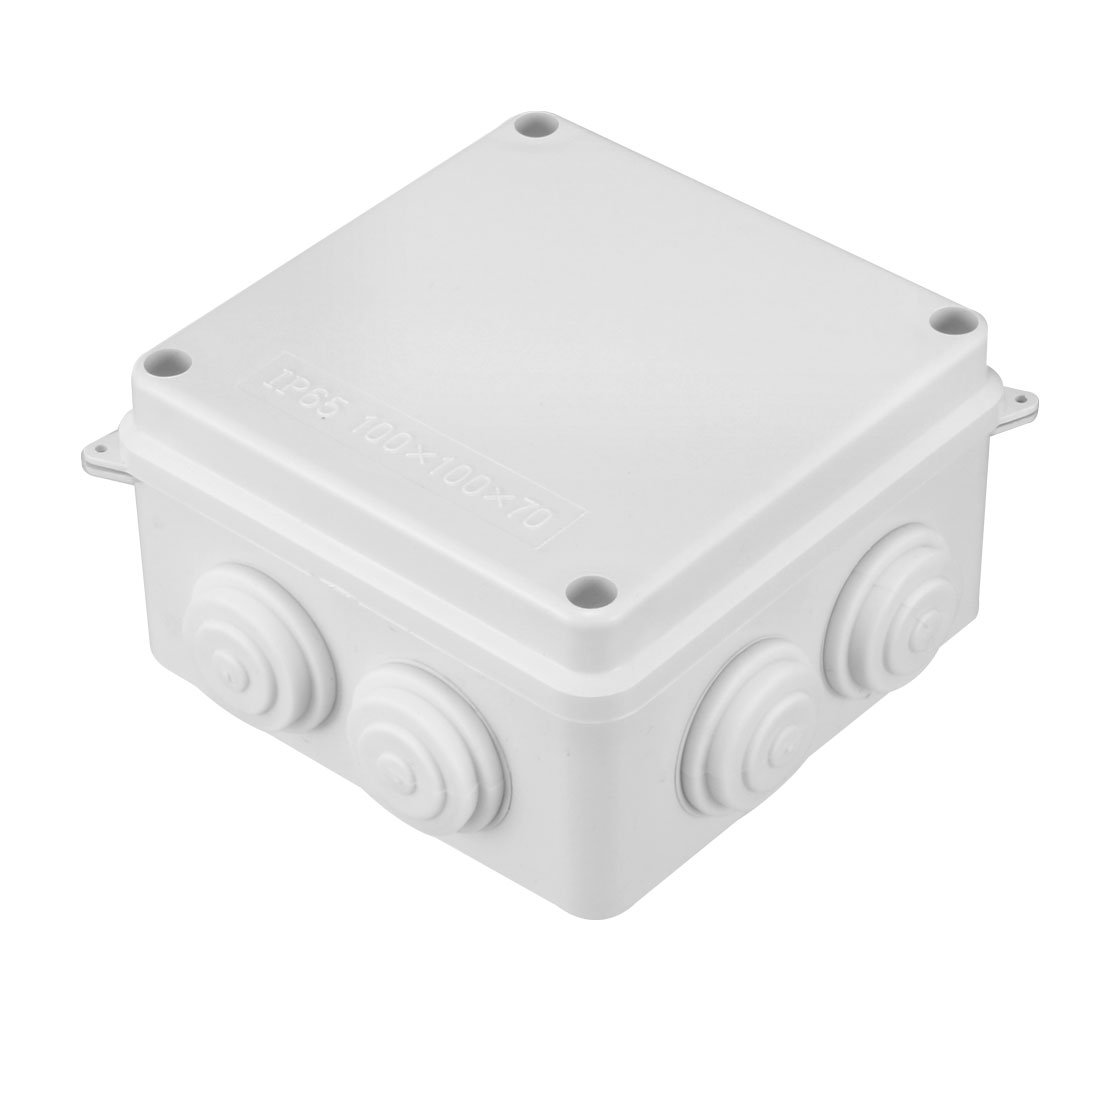 sourcingmap 109 x 109 x 66mm Electronic Plastic DIY Junction Box Enclosure Case White a18032100ux0321